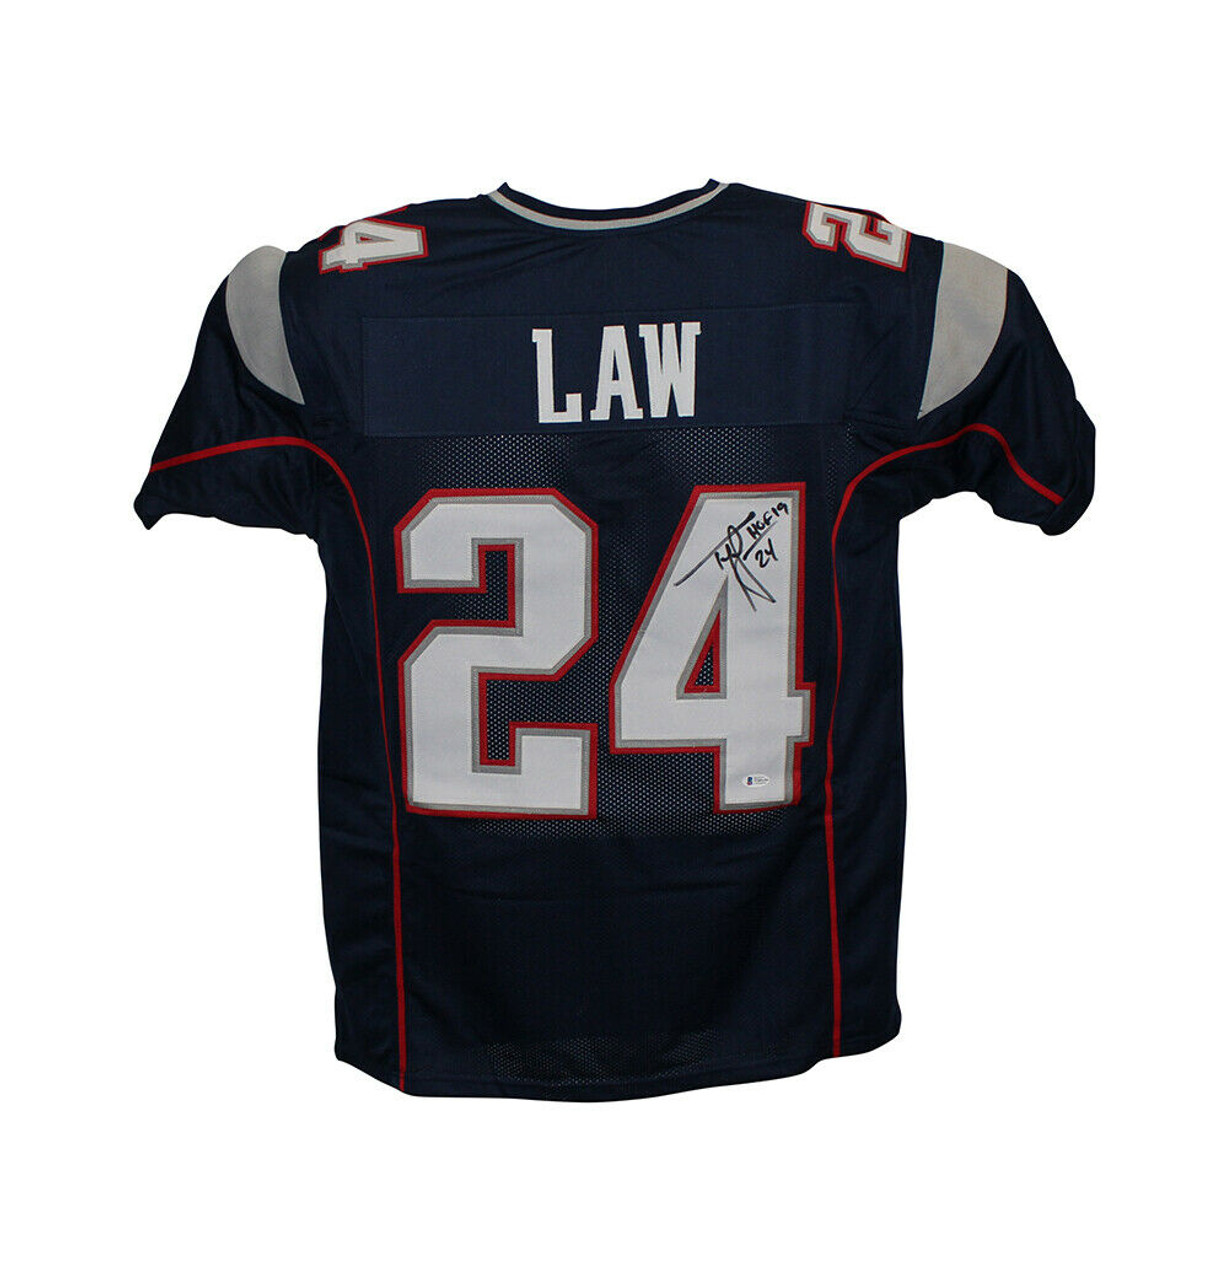 ty law jersey